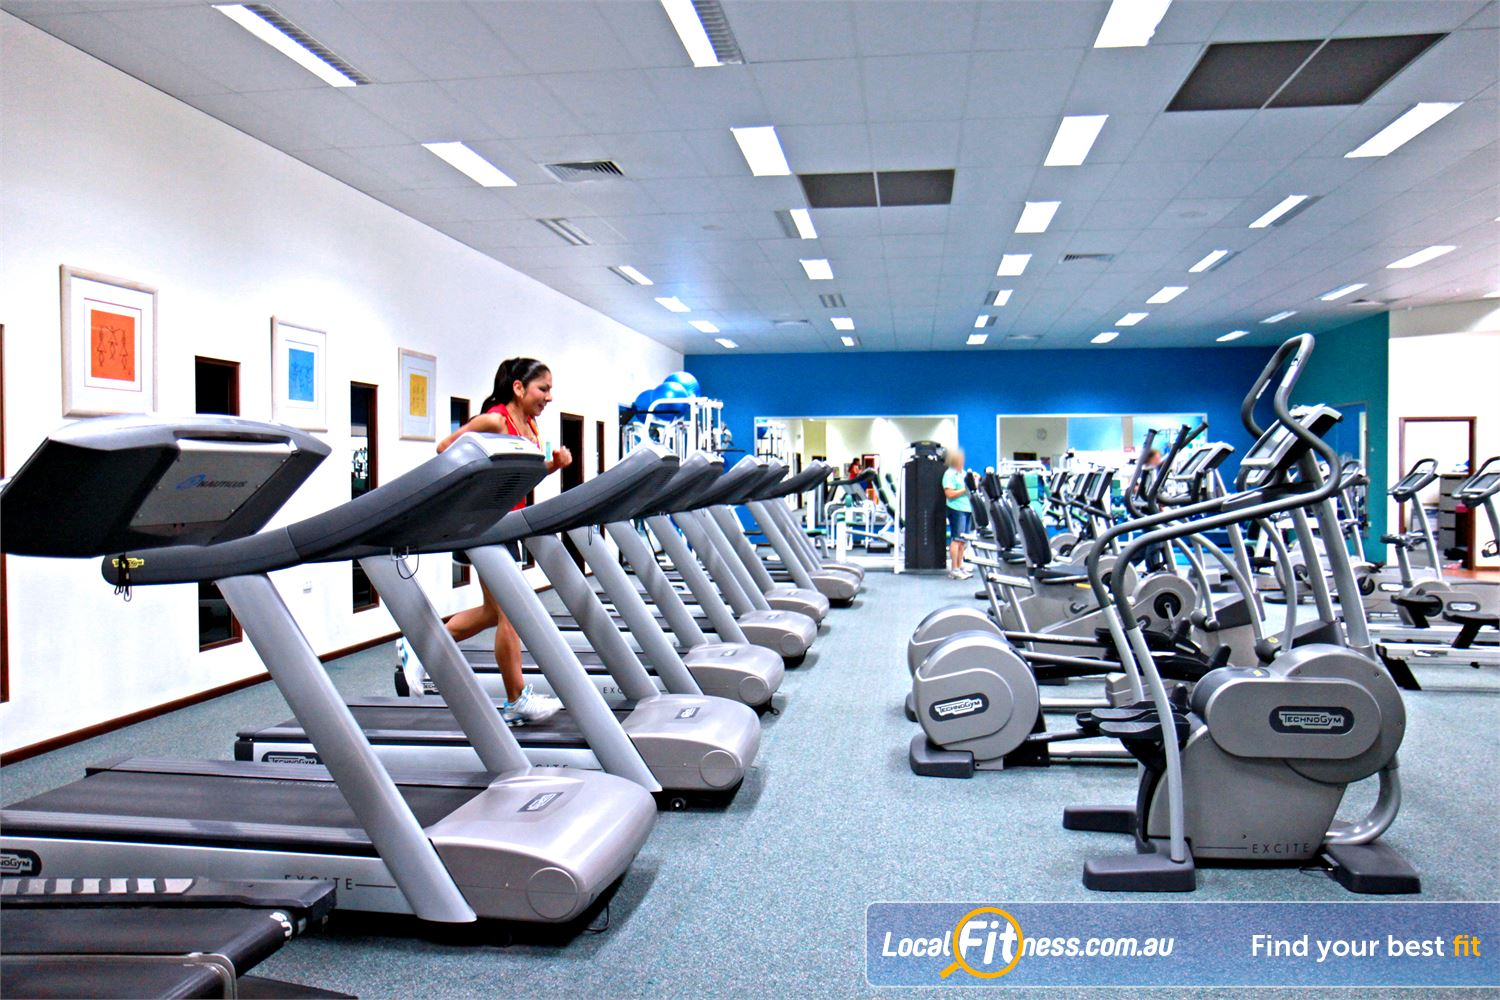 Fernwood Fitness Underwood Fernwood Underwood gym provides a fun, friendly women's only cardio environment.